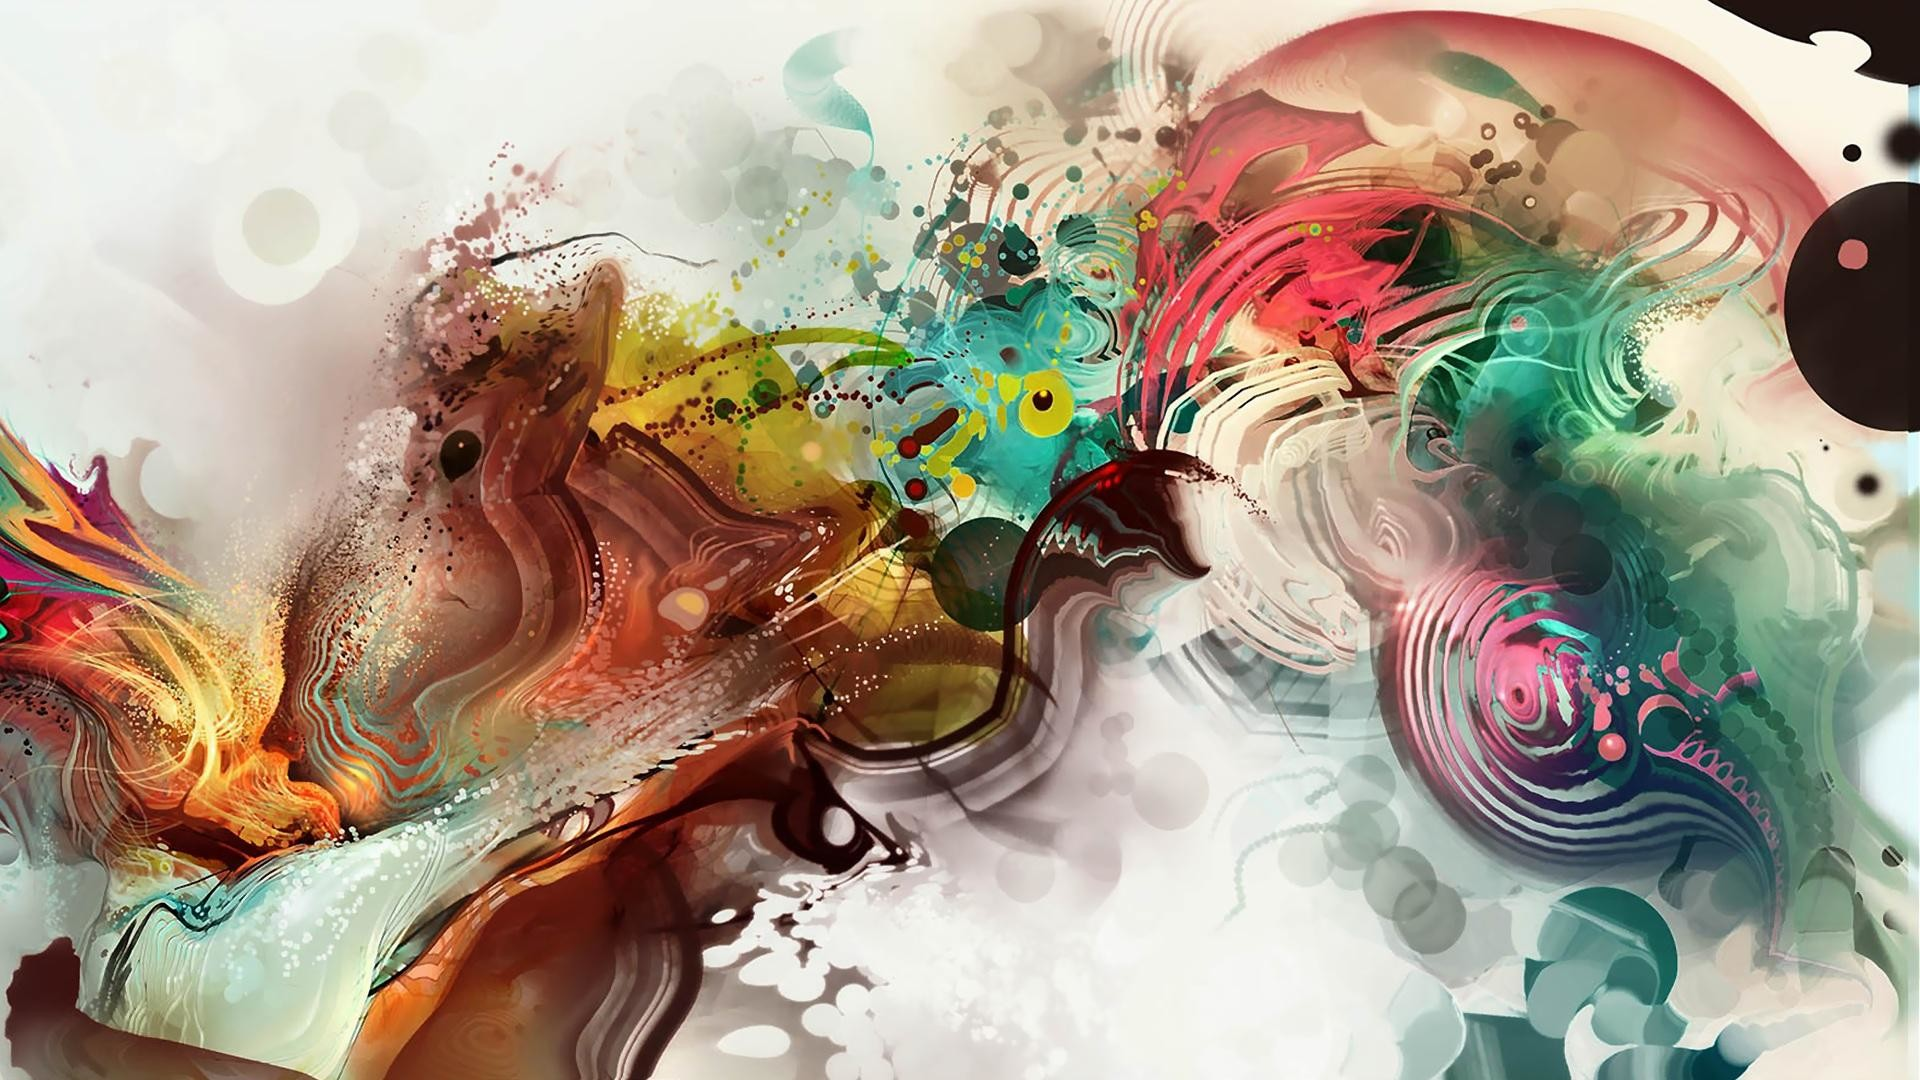 1920x1080 wallpaper.wiki-Abstract-artistic-hd-1080p-background-PIC-WPE0012098